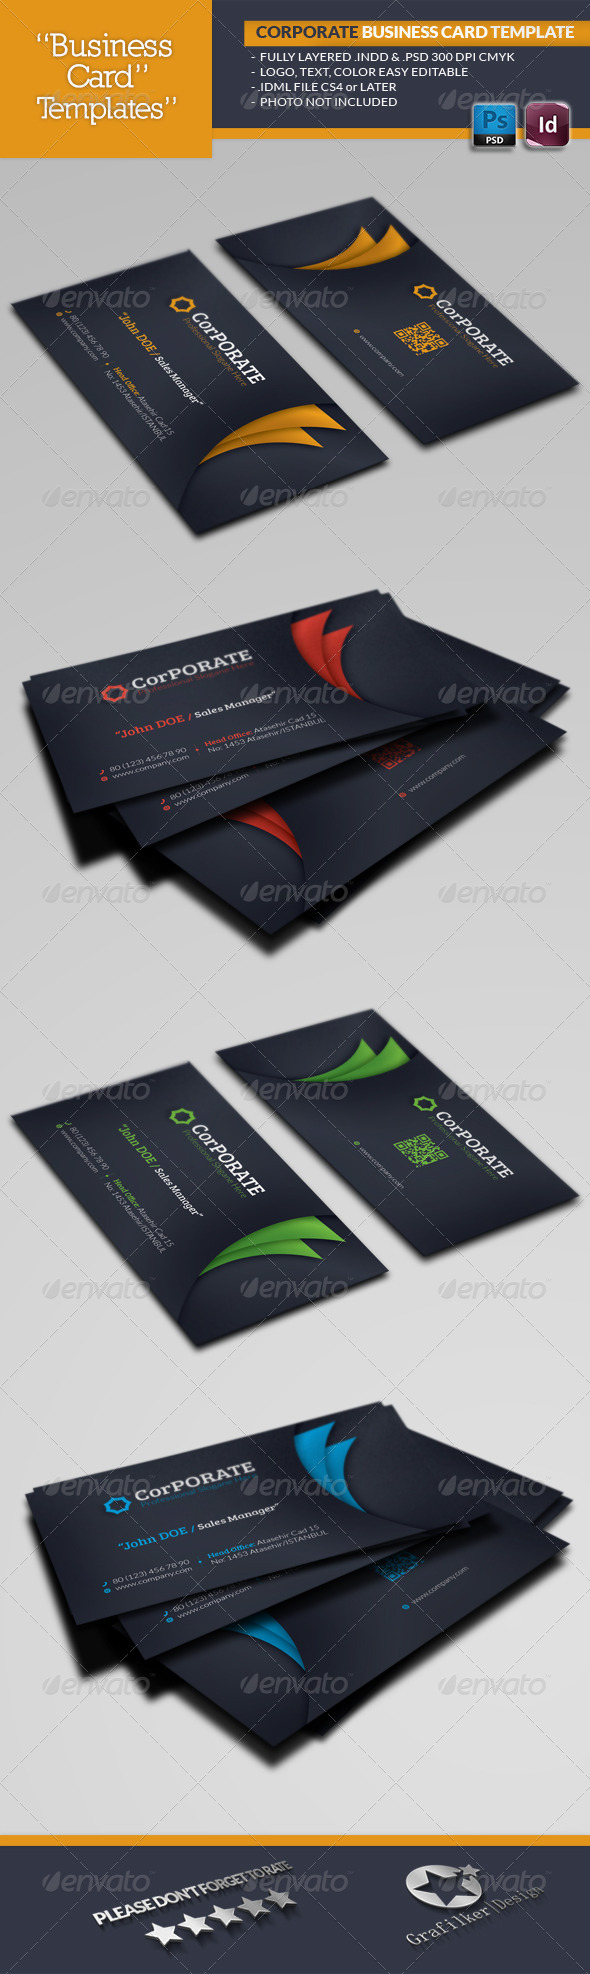 Corporate Business Card Template - Business Cards Print Templates